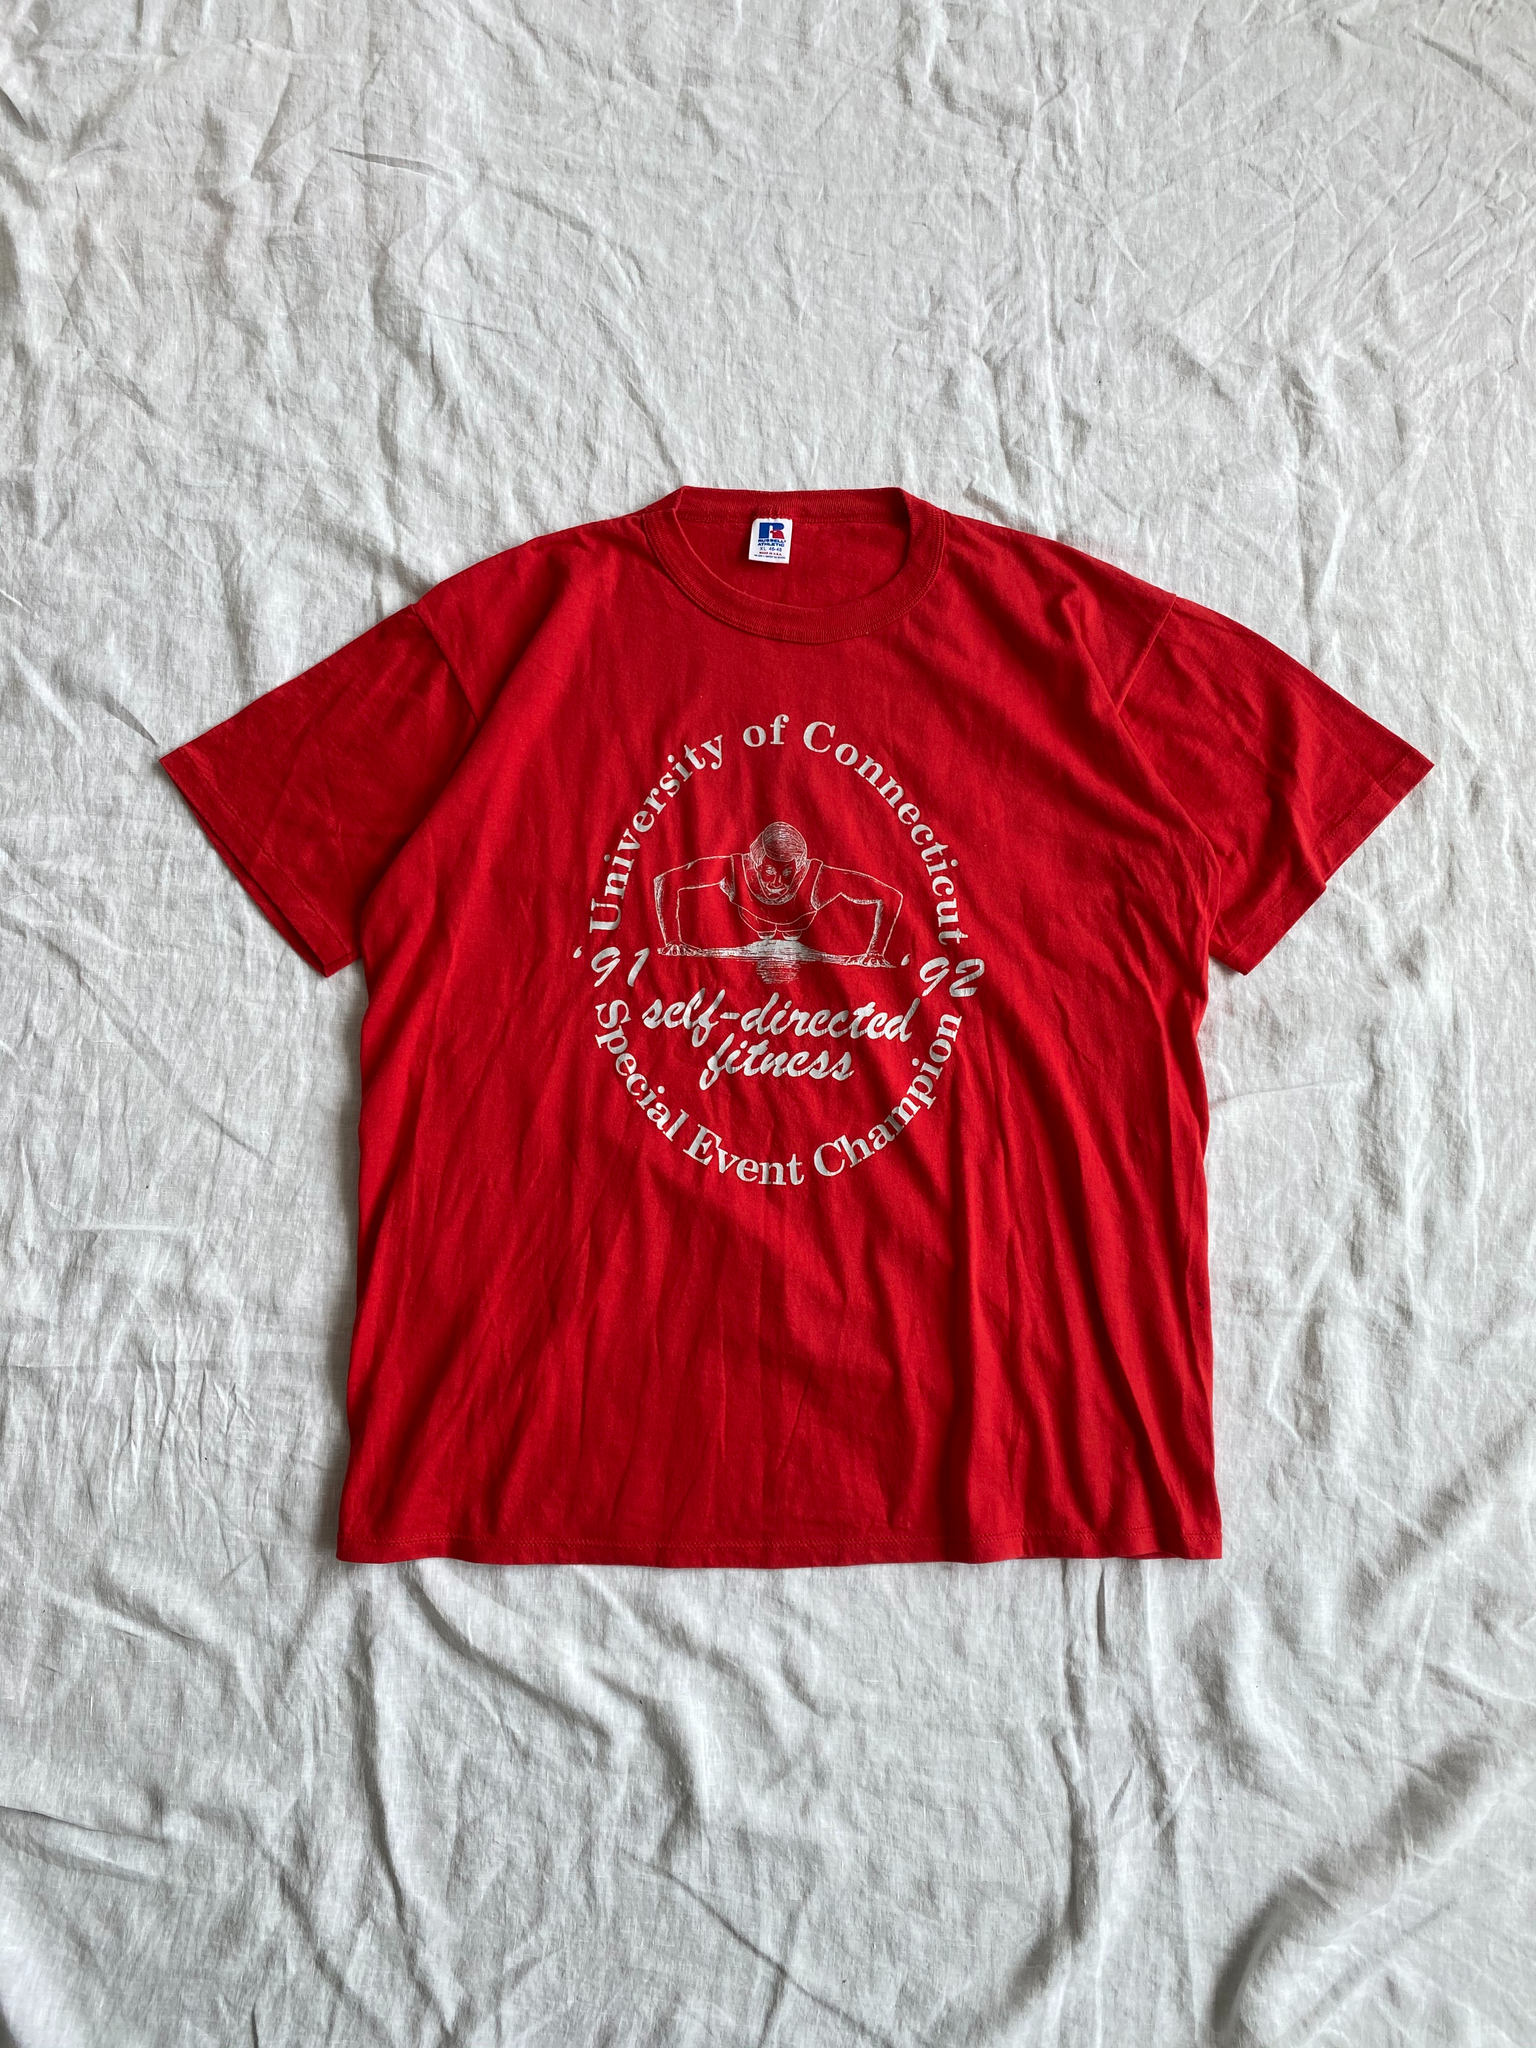 Red University of Connecticut Tee